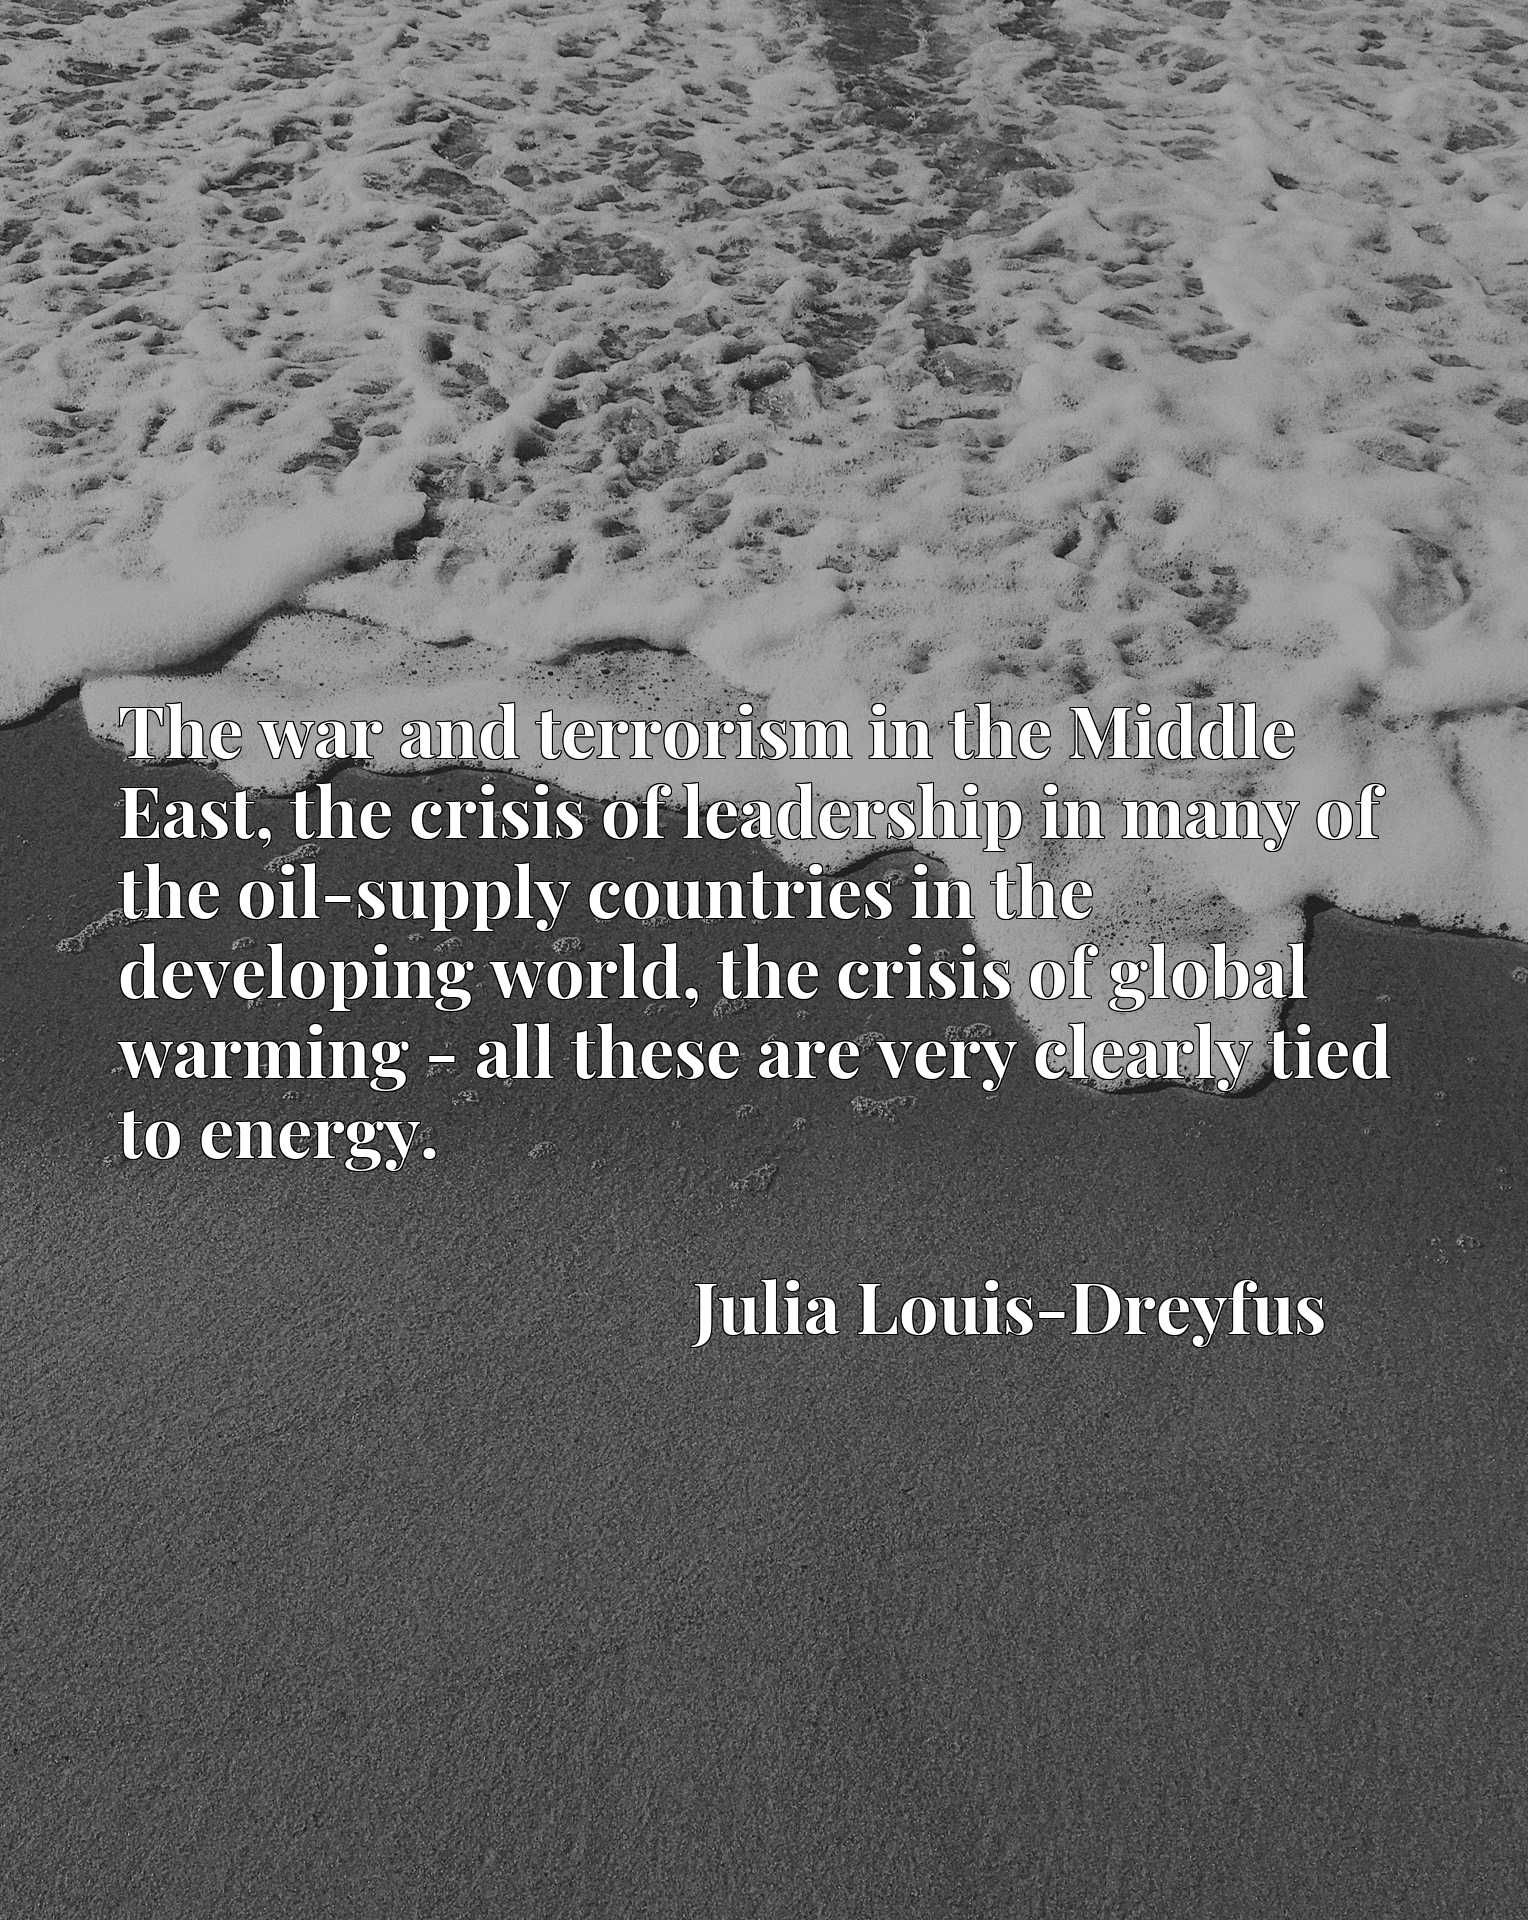 The war and terrorism in the Middle East, the crisis of leadership in many of the oil-supply countries in the developing world, the crisis of global warming - all these are very clearly tied to energy.